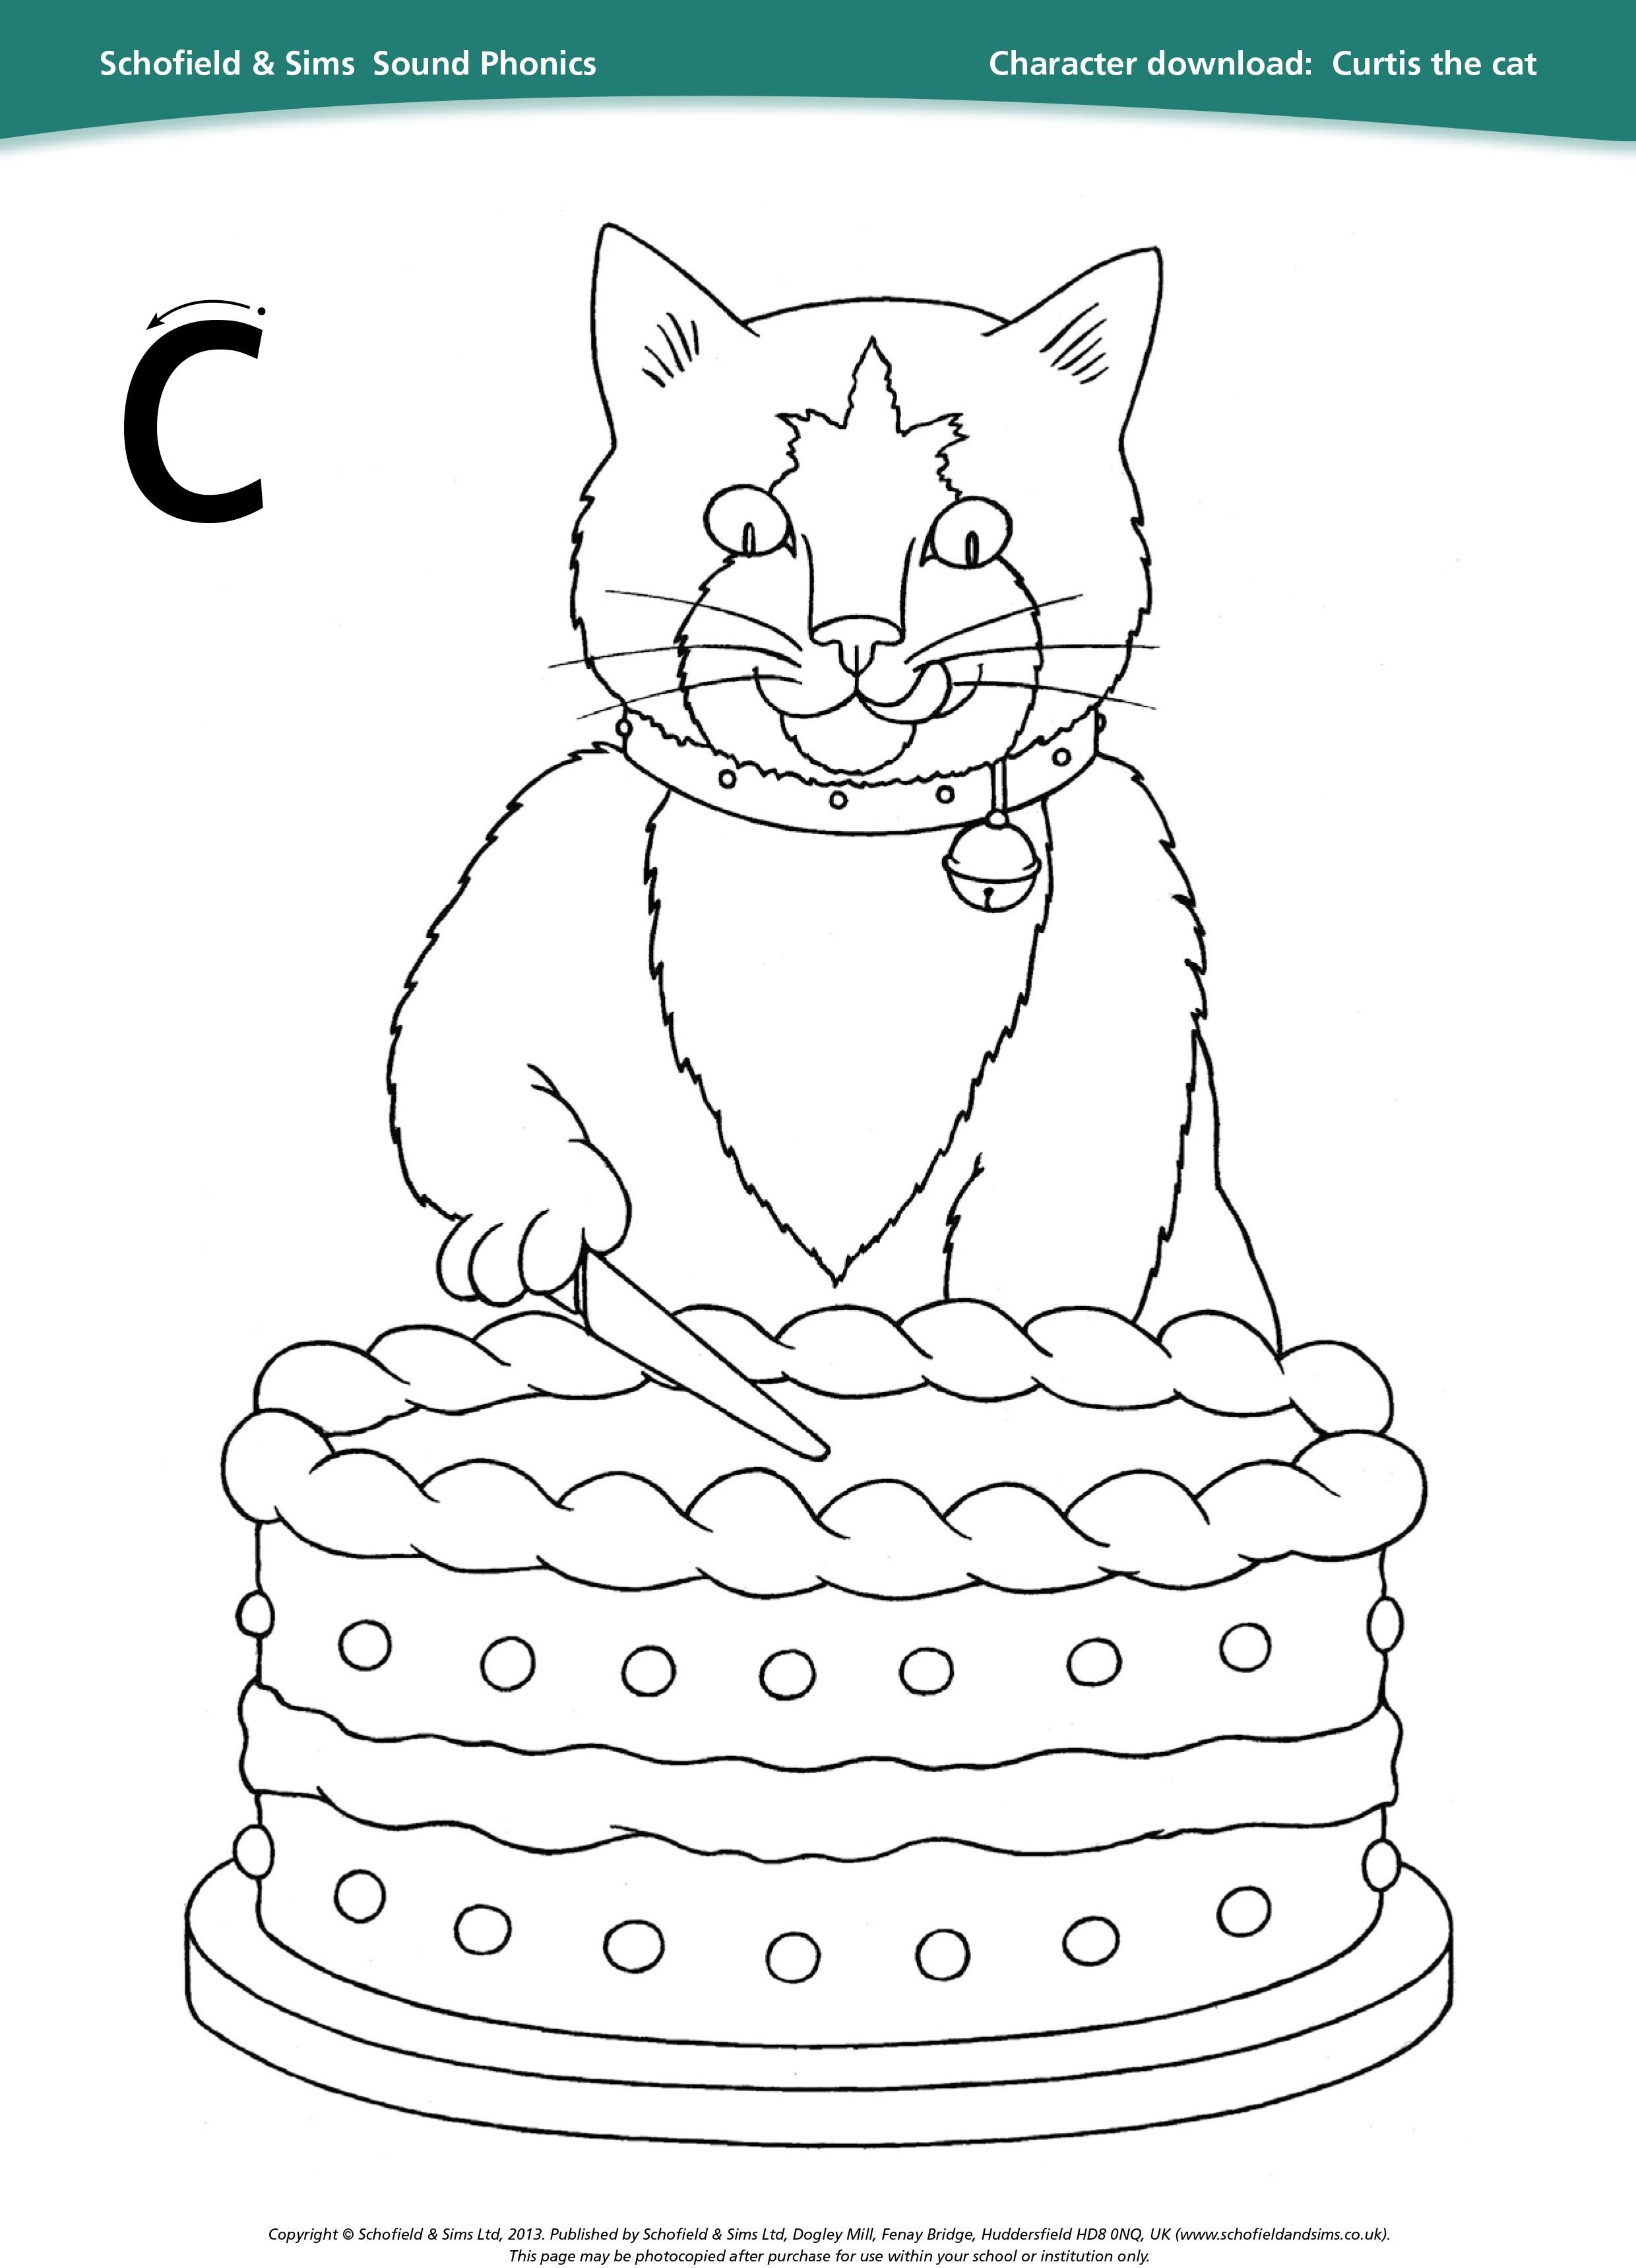 Curtis The Cat Sheet For Learning Phonics Education Ks1